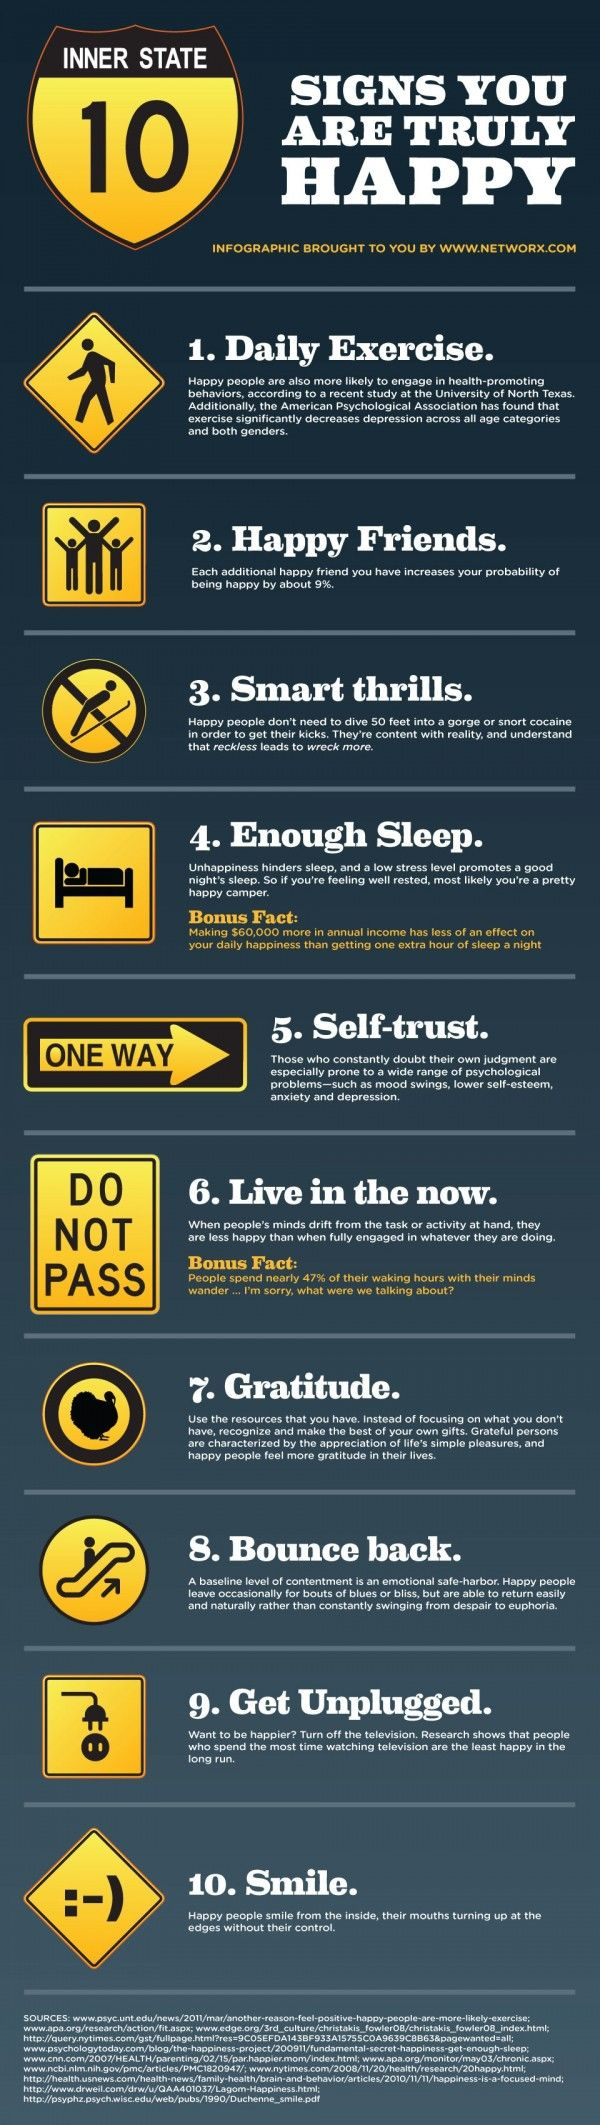 10-signs-of-true-happiness -> Infographic #health #wellbeing